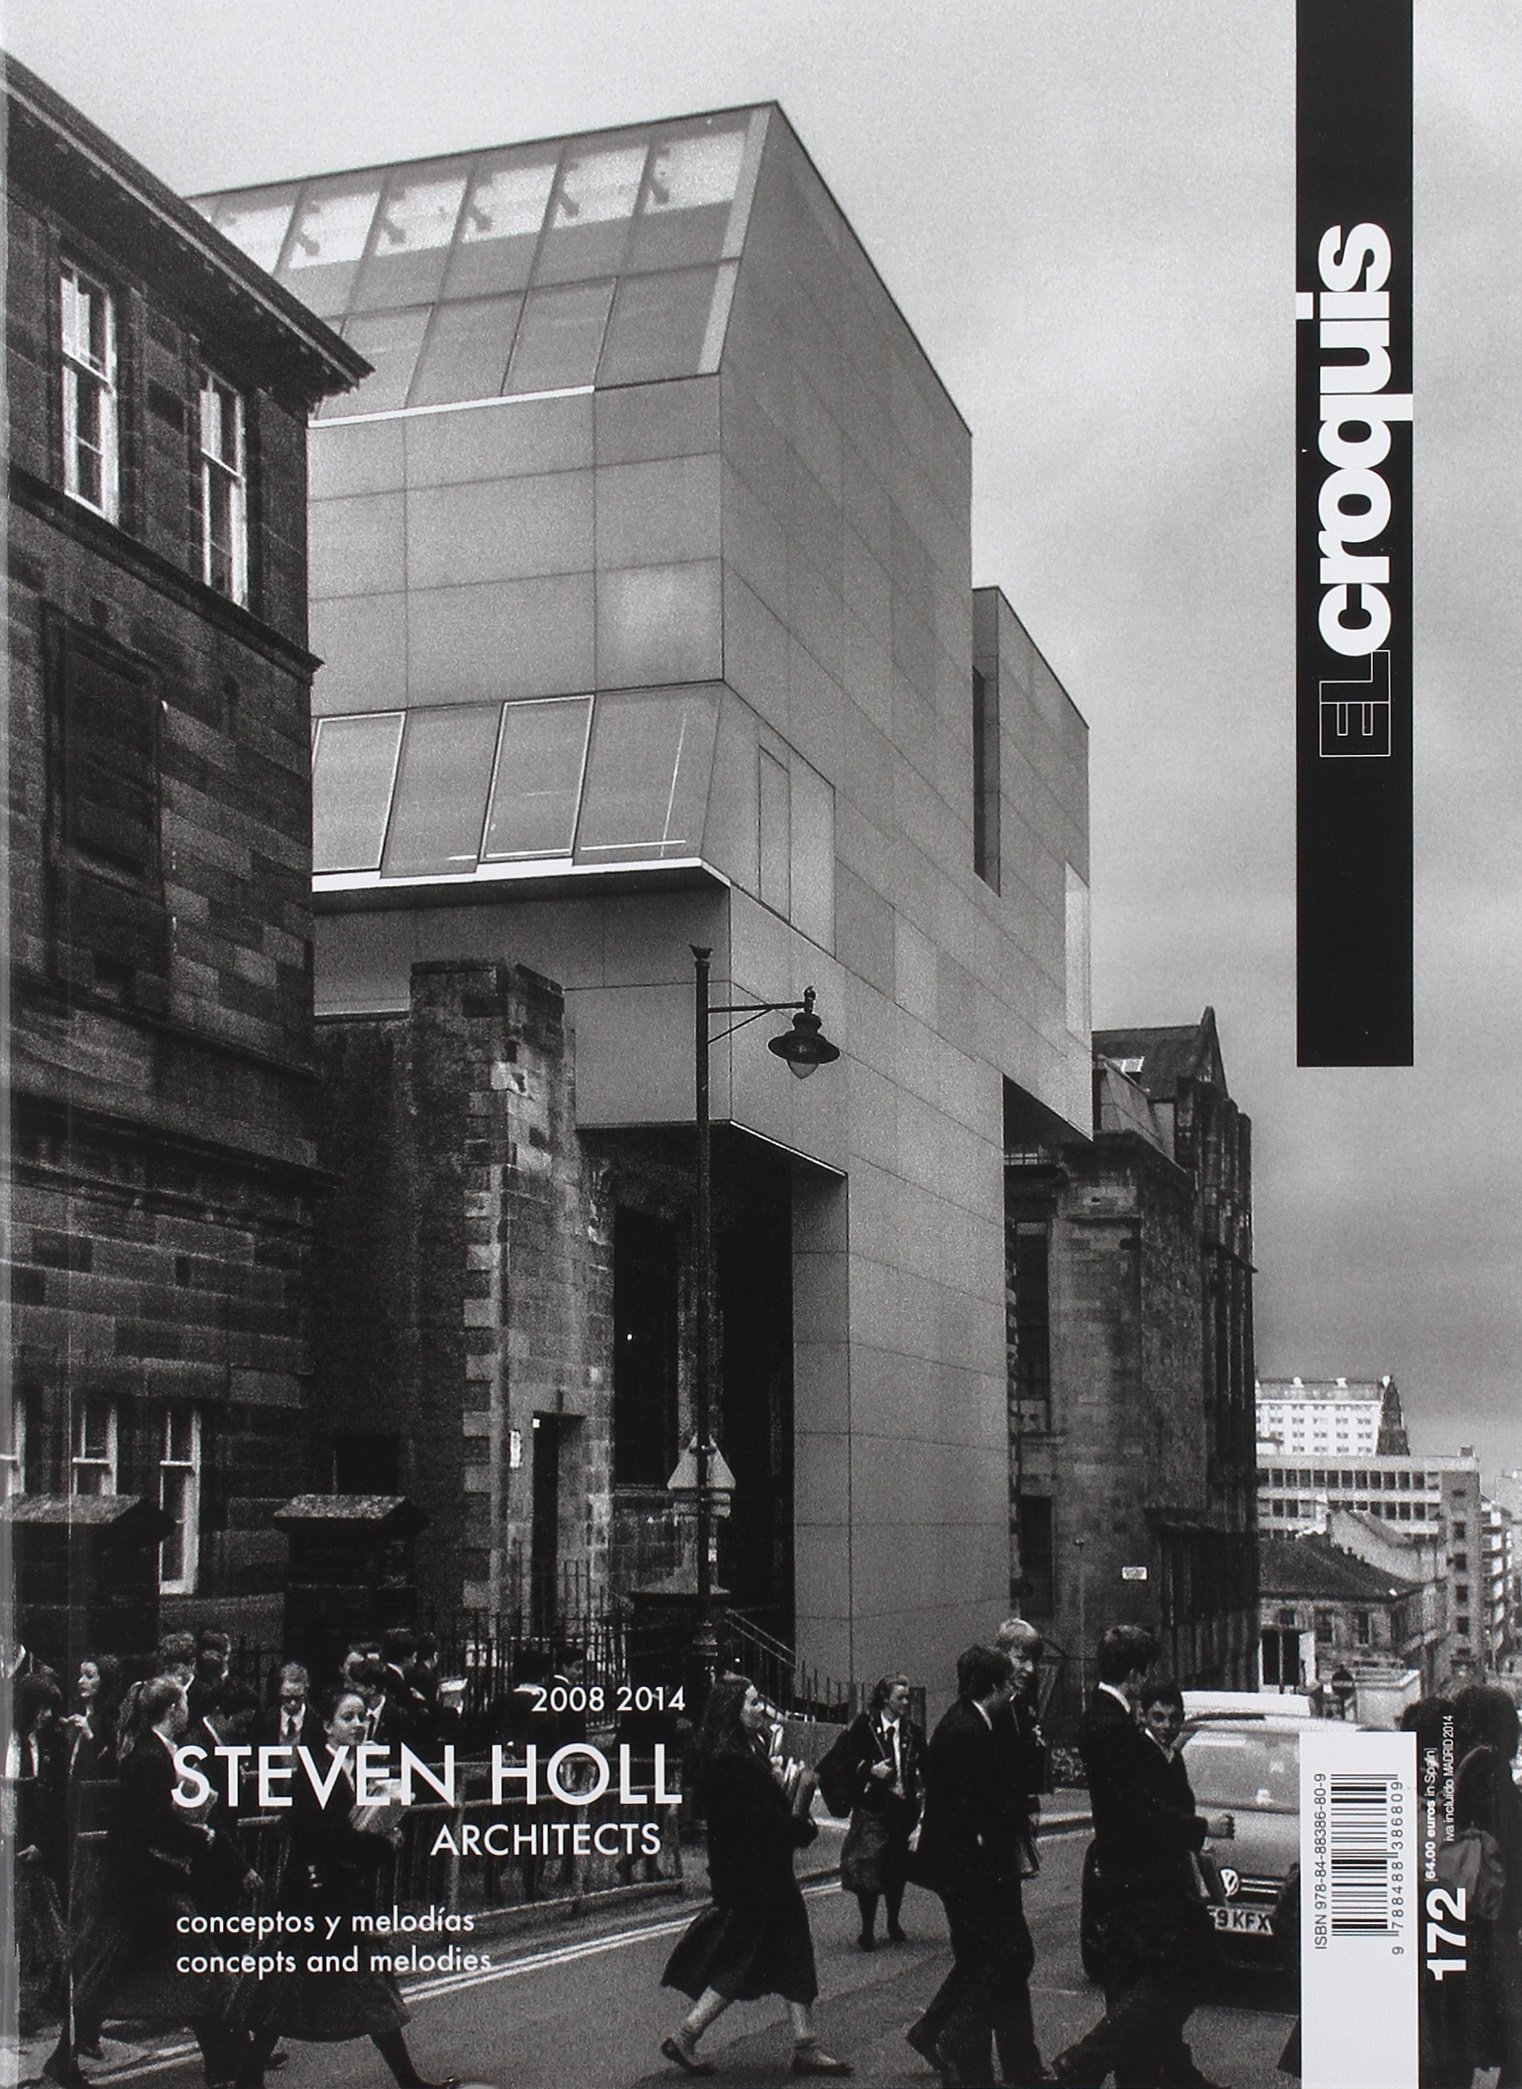 Steven Holl architects 2008-2014. Concept and melodies. Ediz. inglese e spagnola: Croquis 172 . Steven Holl. Architects. 2008-2014 (Revista El Croquis) (Inglés) Tapa dura – 22 sep 2014 Vv.Aa. 848838680X Pubblicazioni in serie periodici